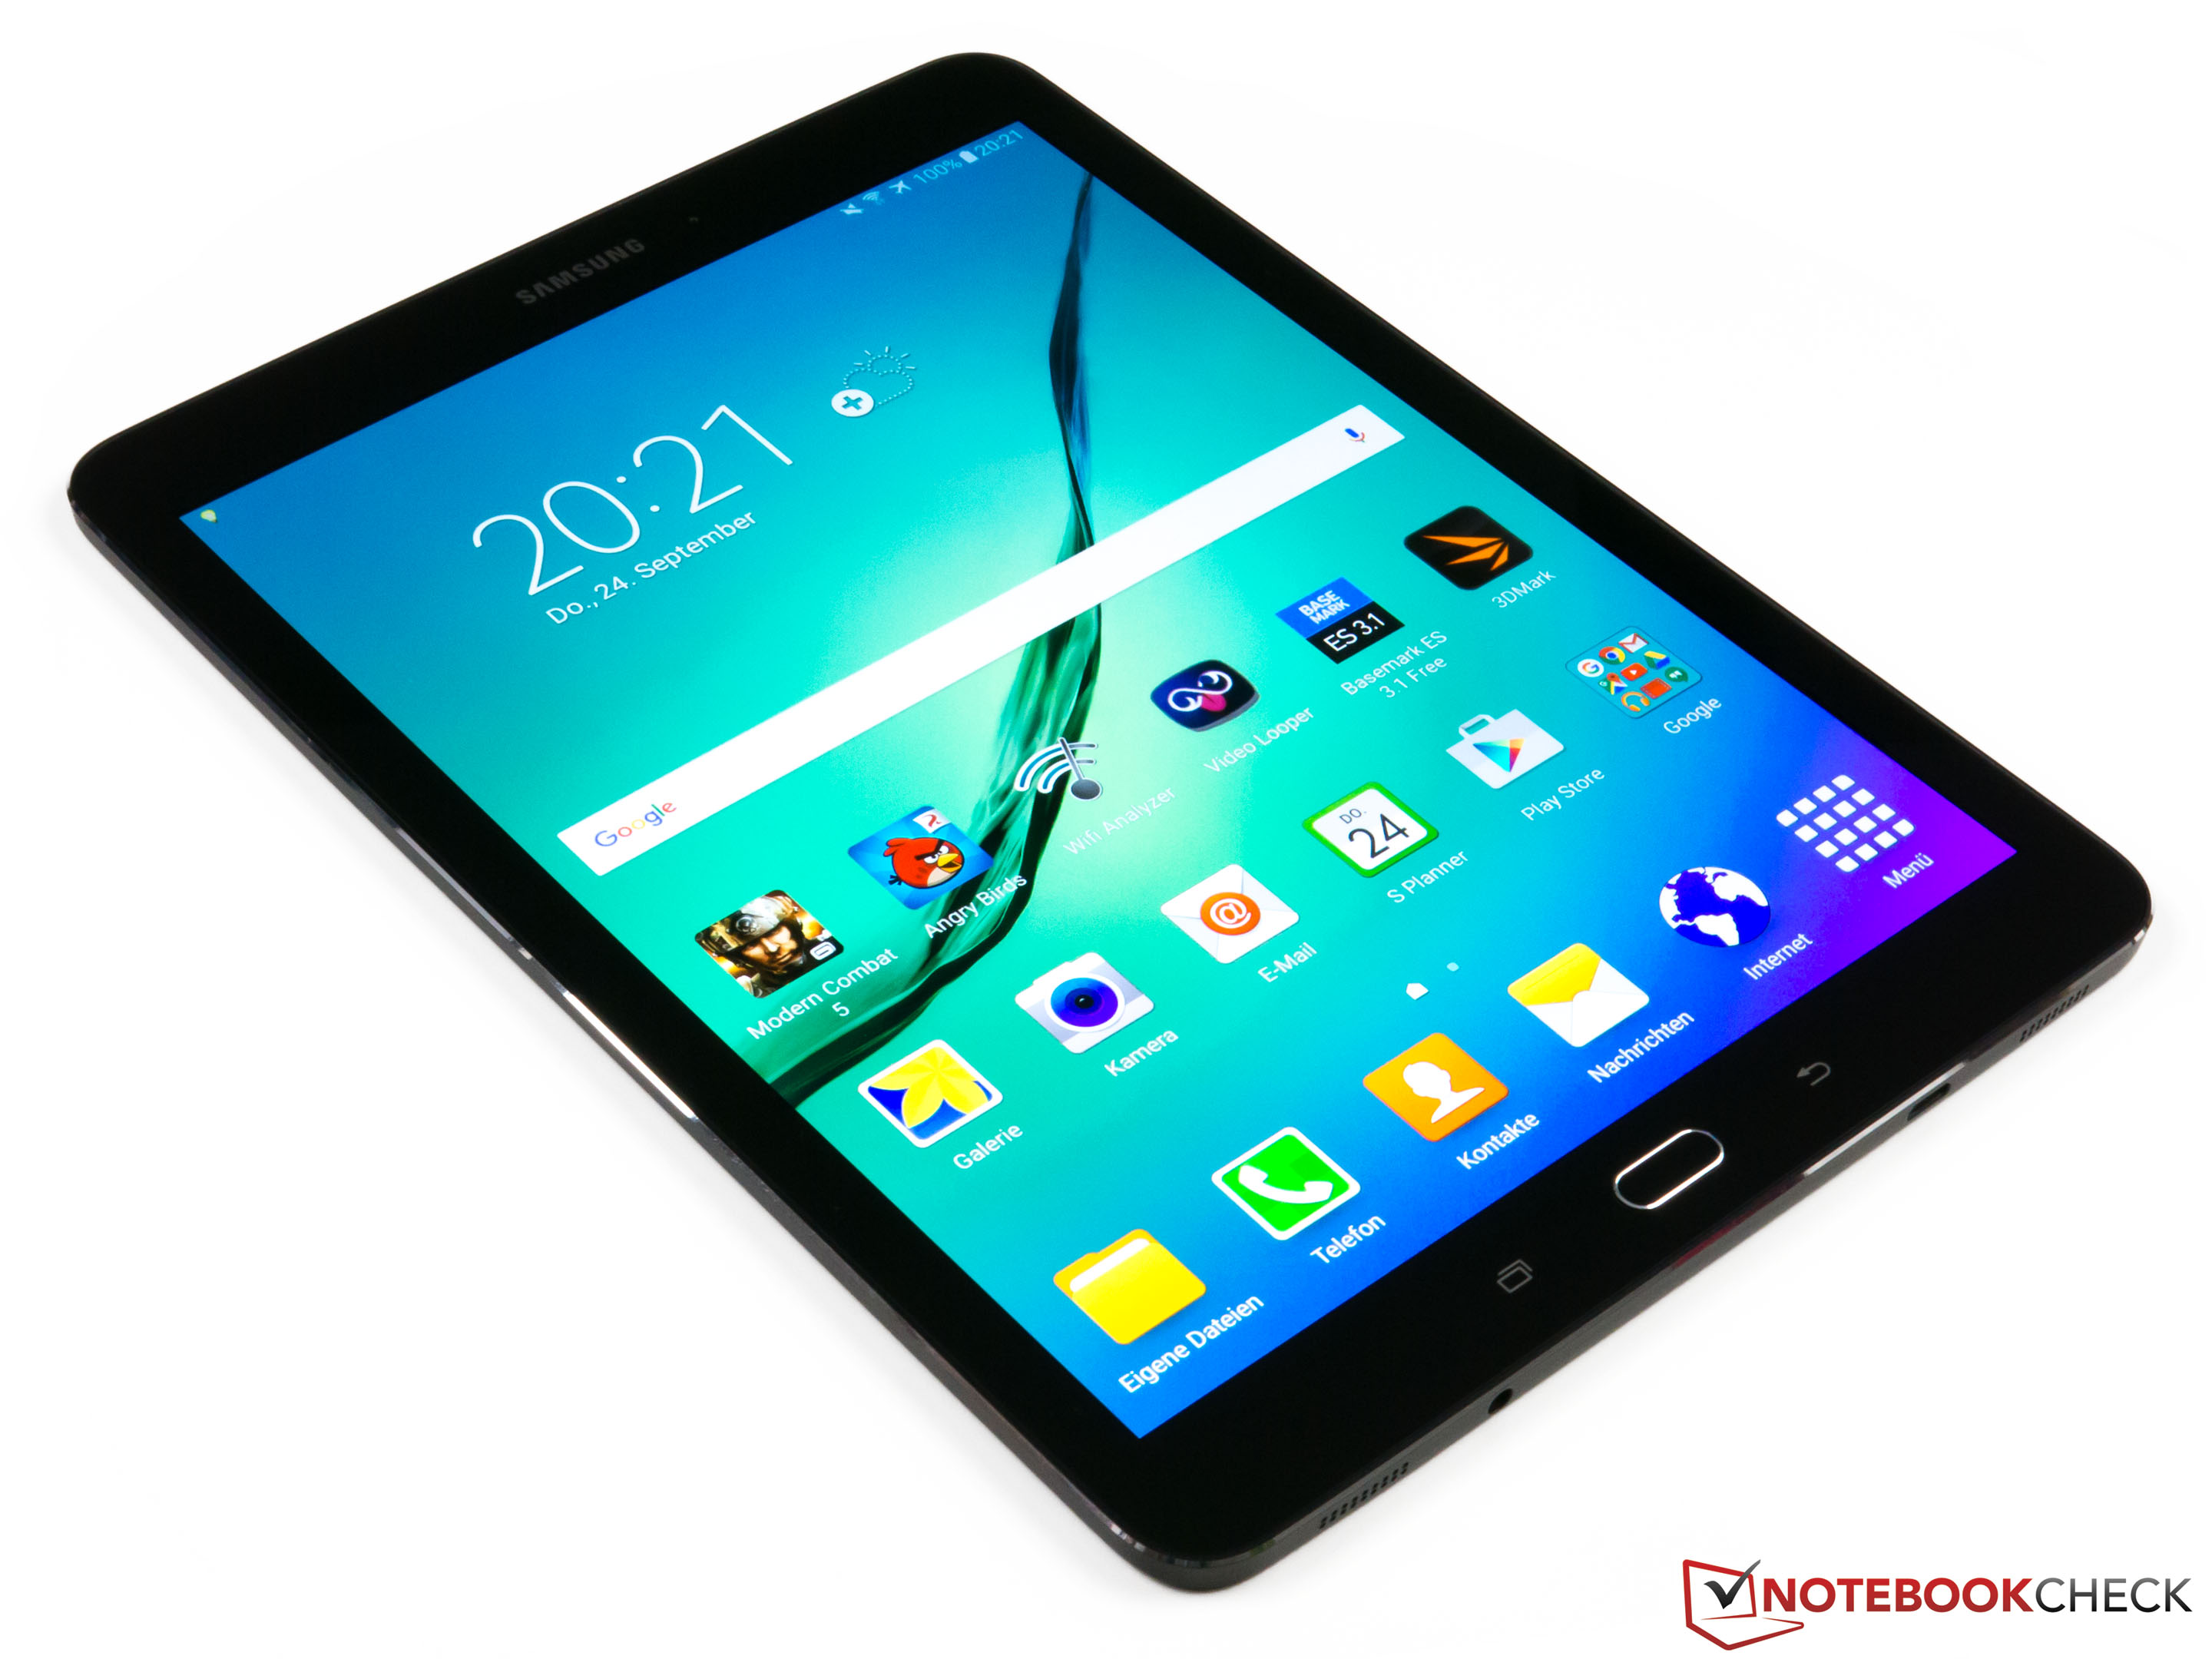 test samsung galaxy tab s2 9 7 lte tablet notebookcheck. Black Bedroom Furniture Sets. Home Design Ideas